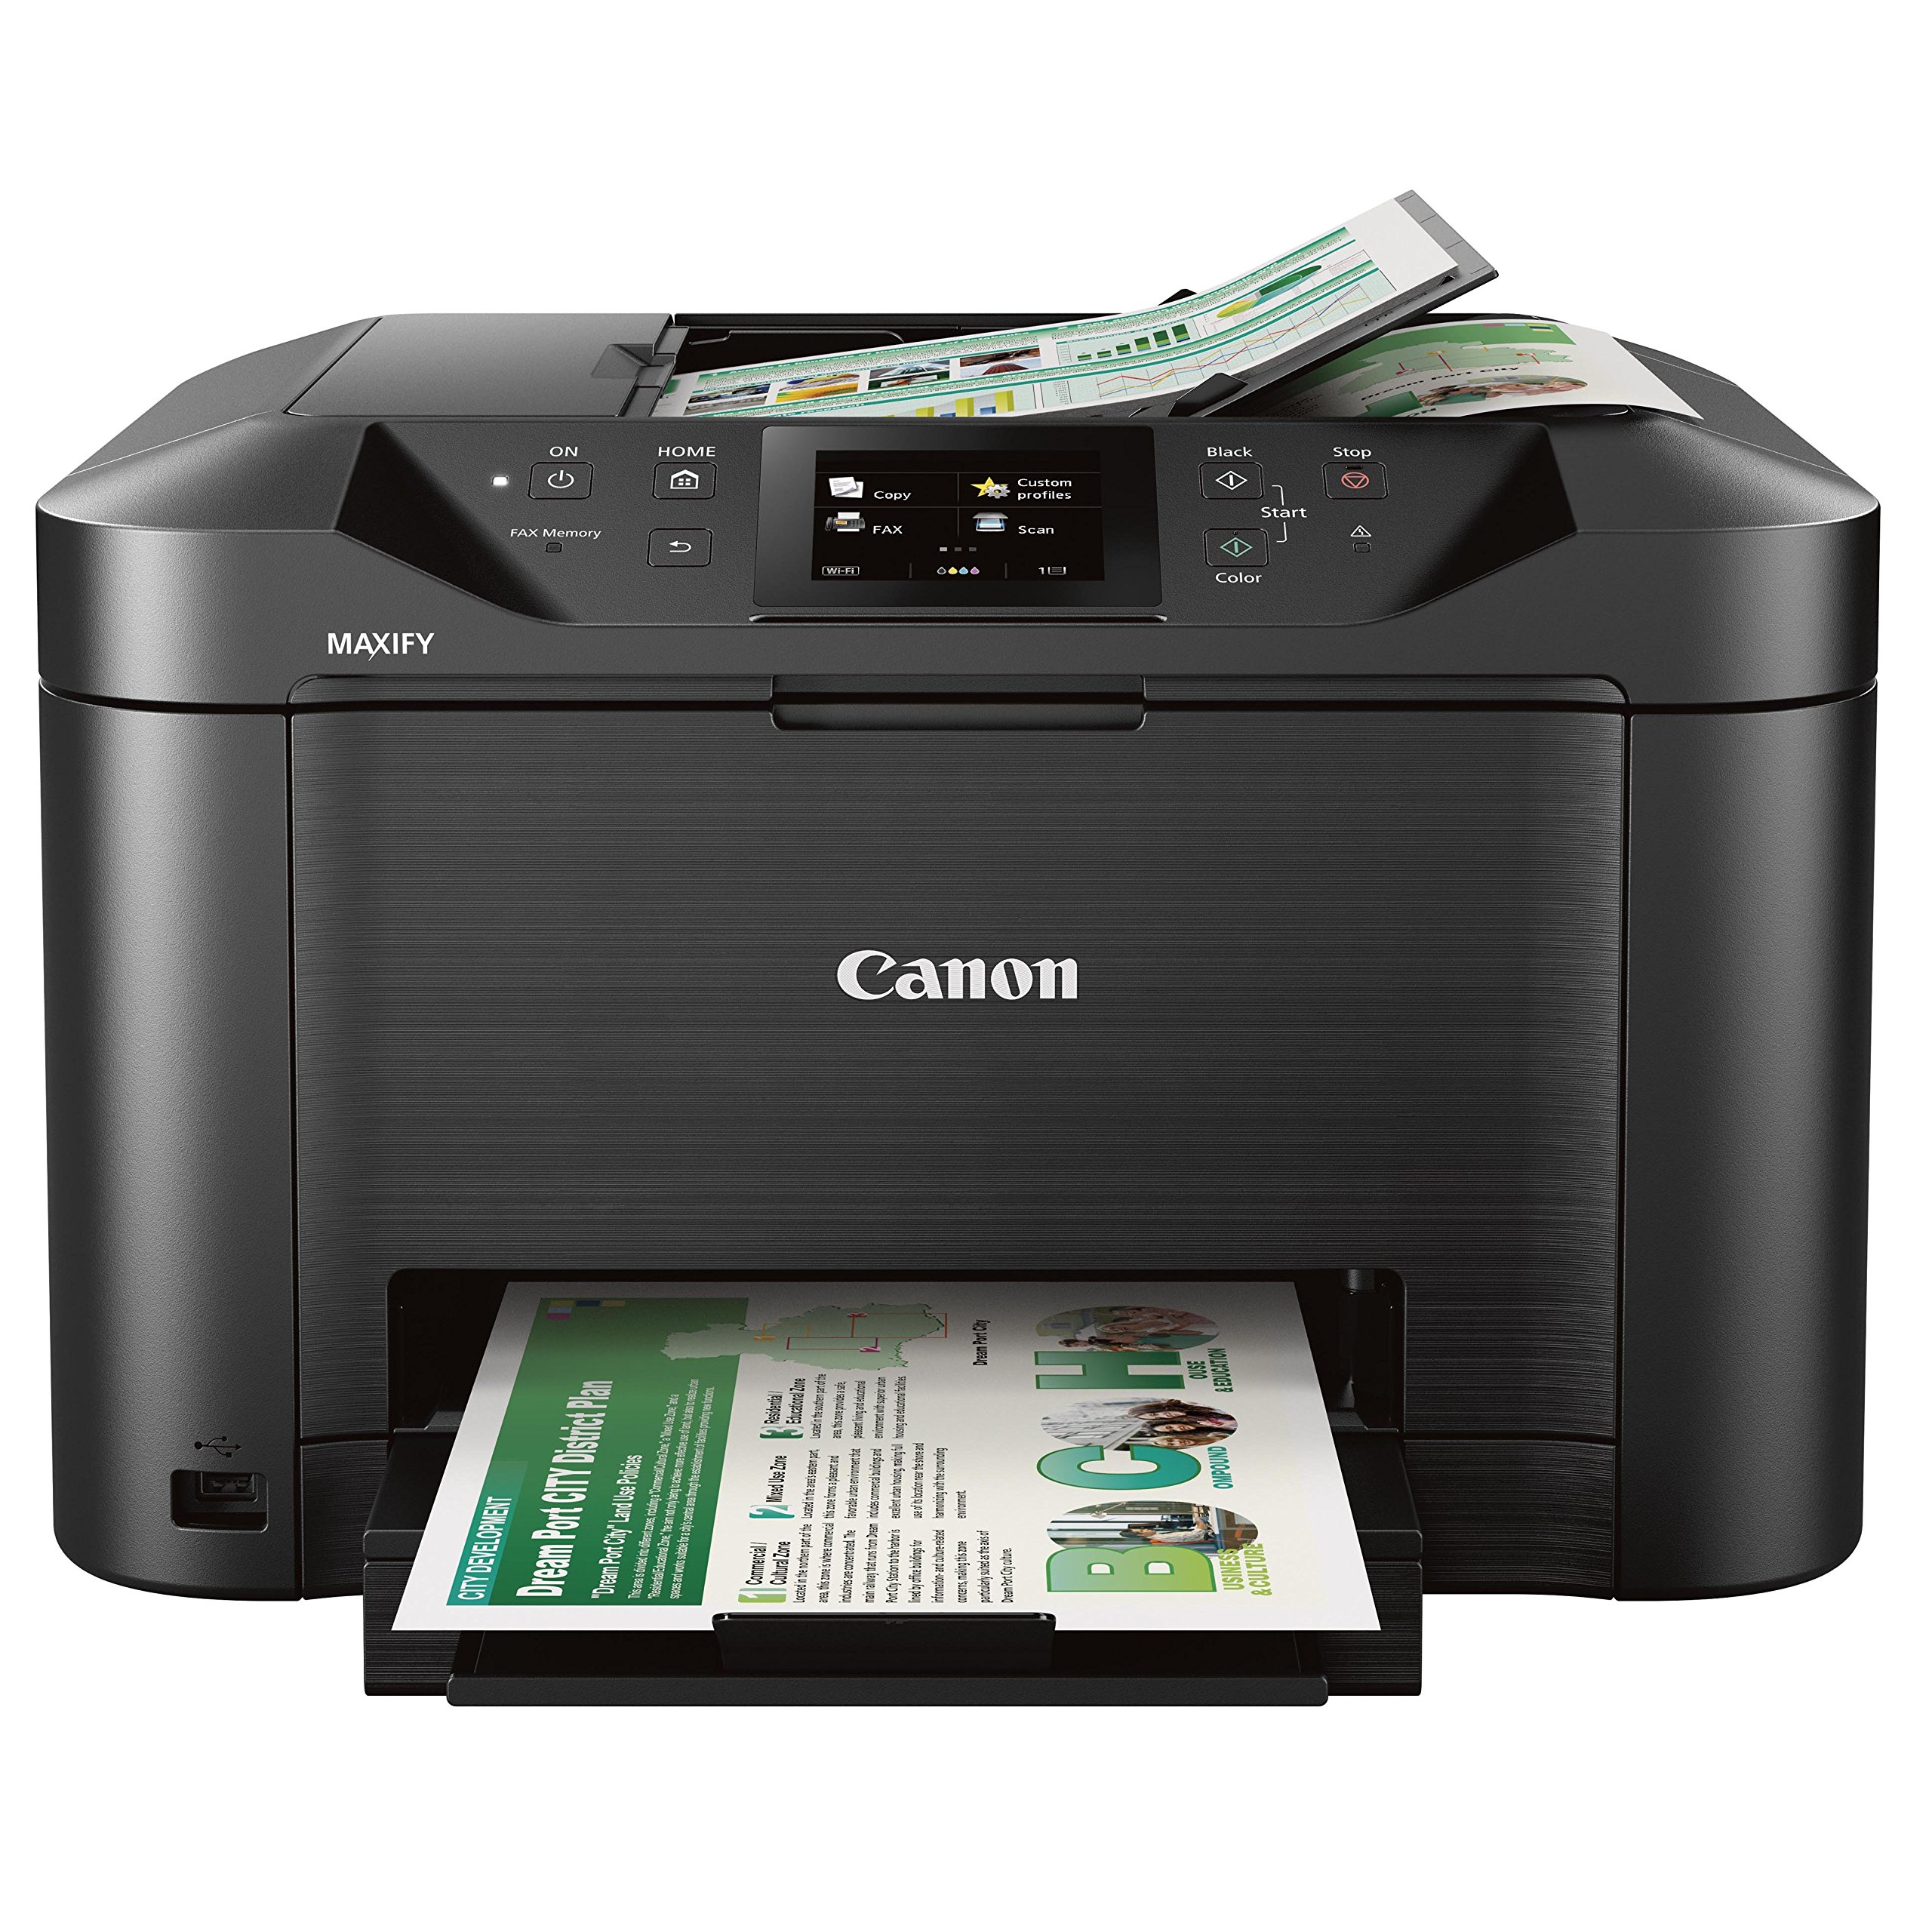 Canon Office and Business MB5120 All-In-One Printer, Scanner, Copier and Fax, with Mobile and Duplex Printing